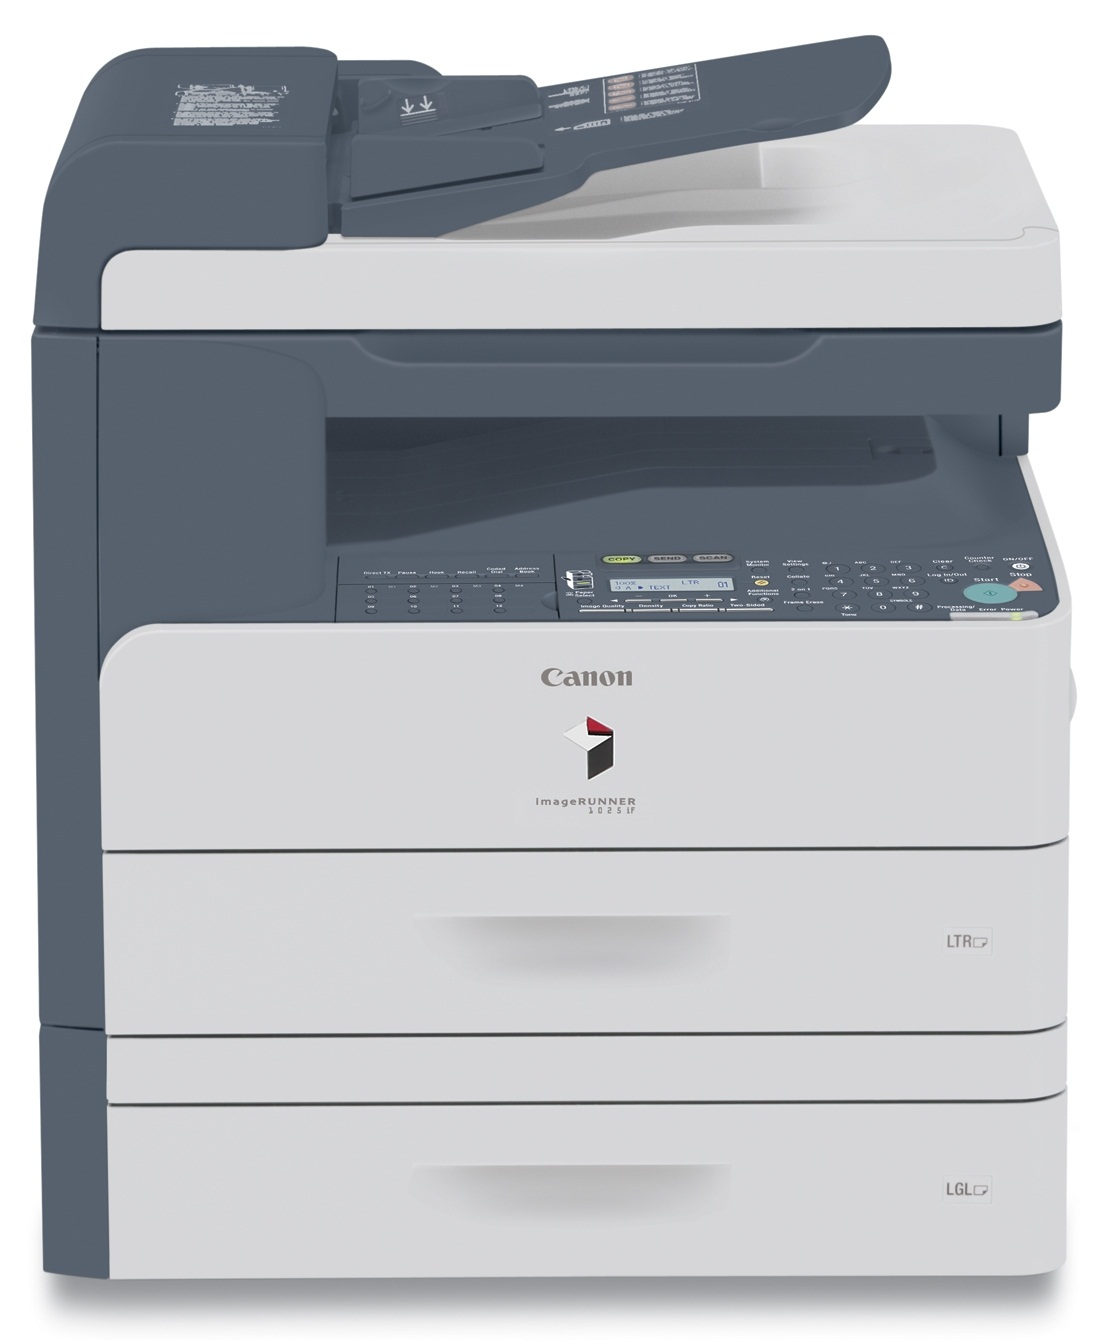 canon imagerunner 1025if printer jtf business systems rh jtfbus com canon imagerunner 1025if user manual canon ir 1025 user guide